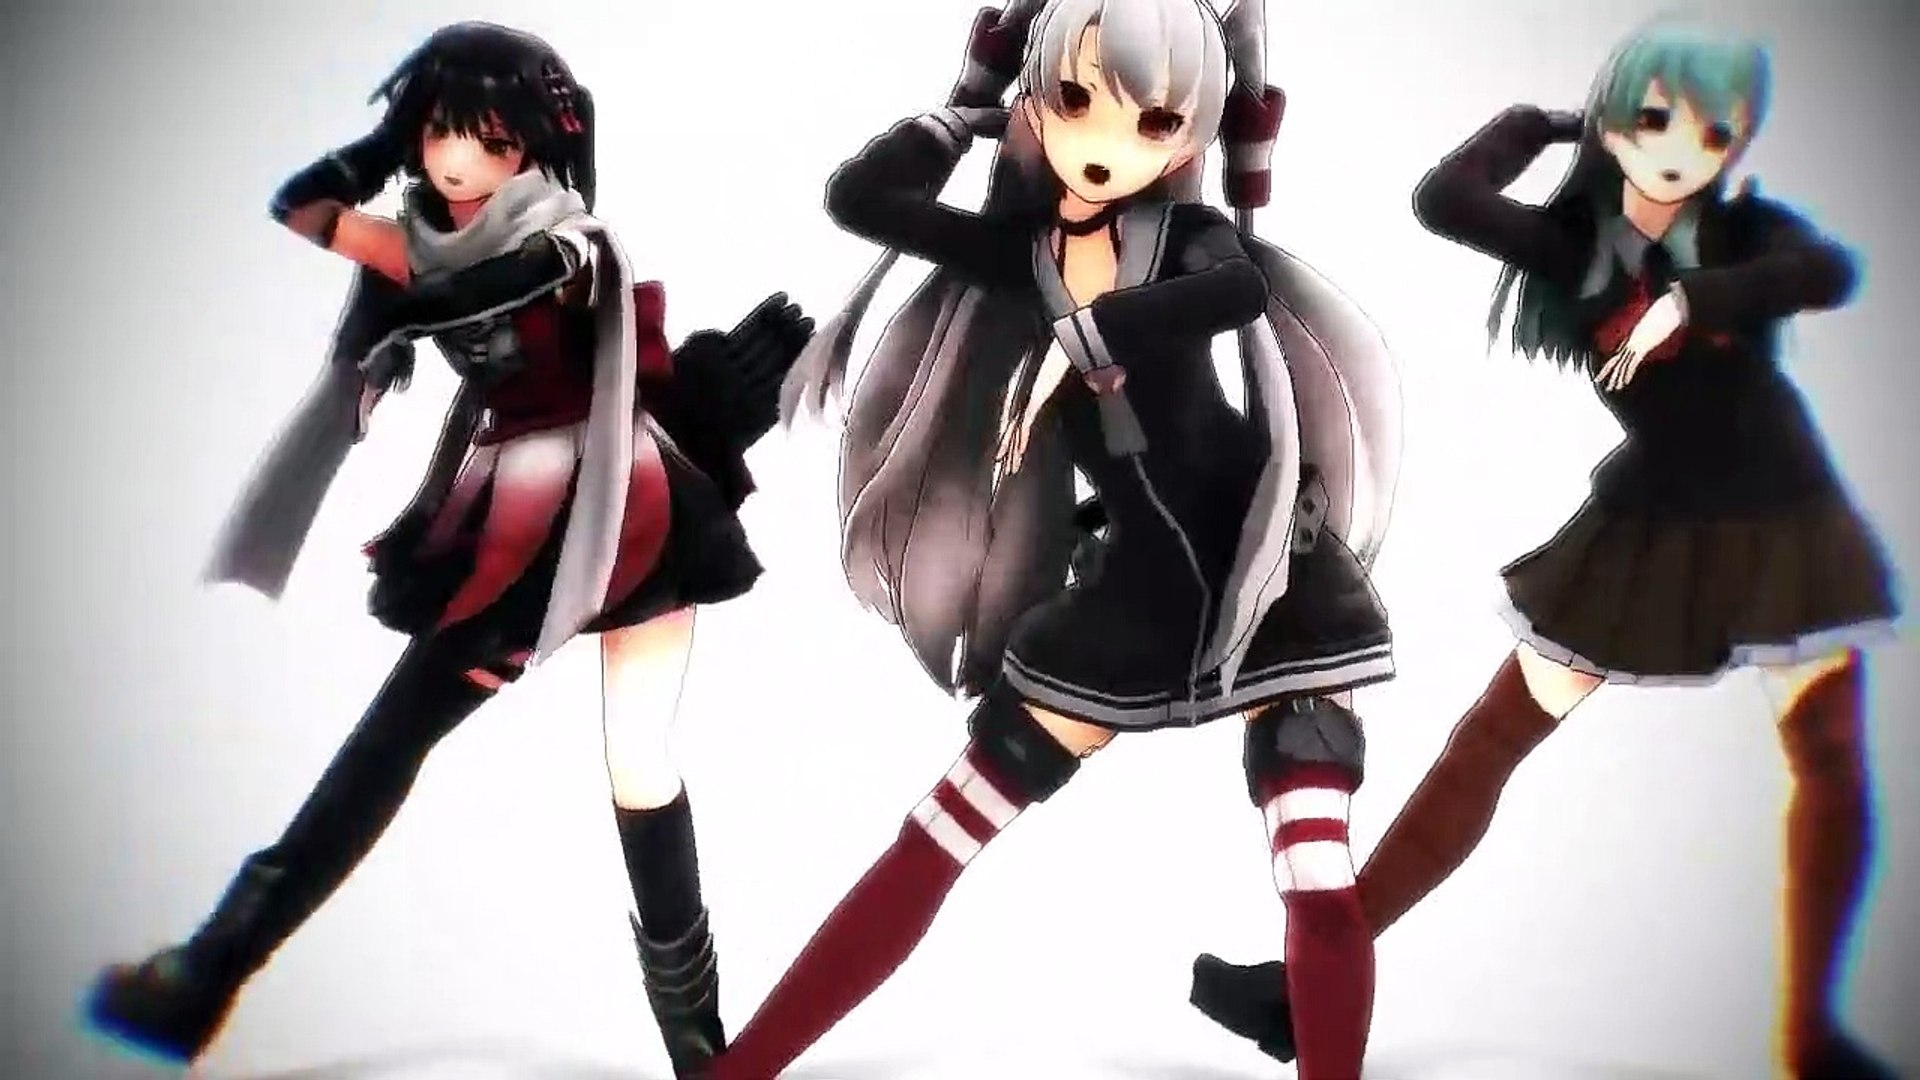 Anime Dancing By Mmd Video Dailymotion